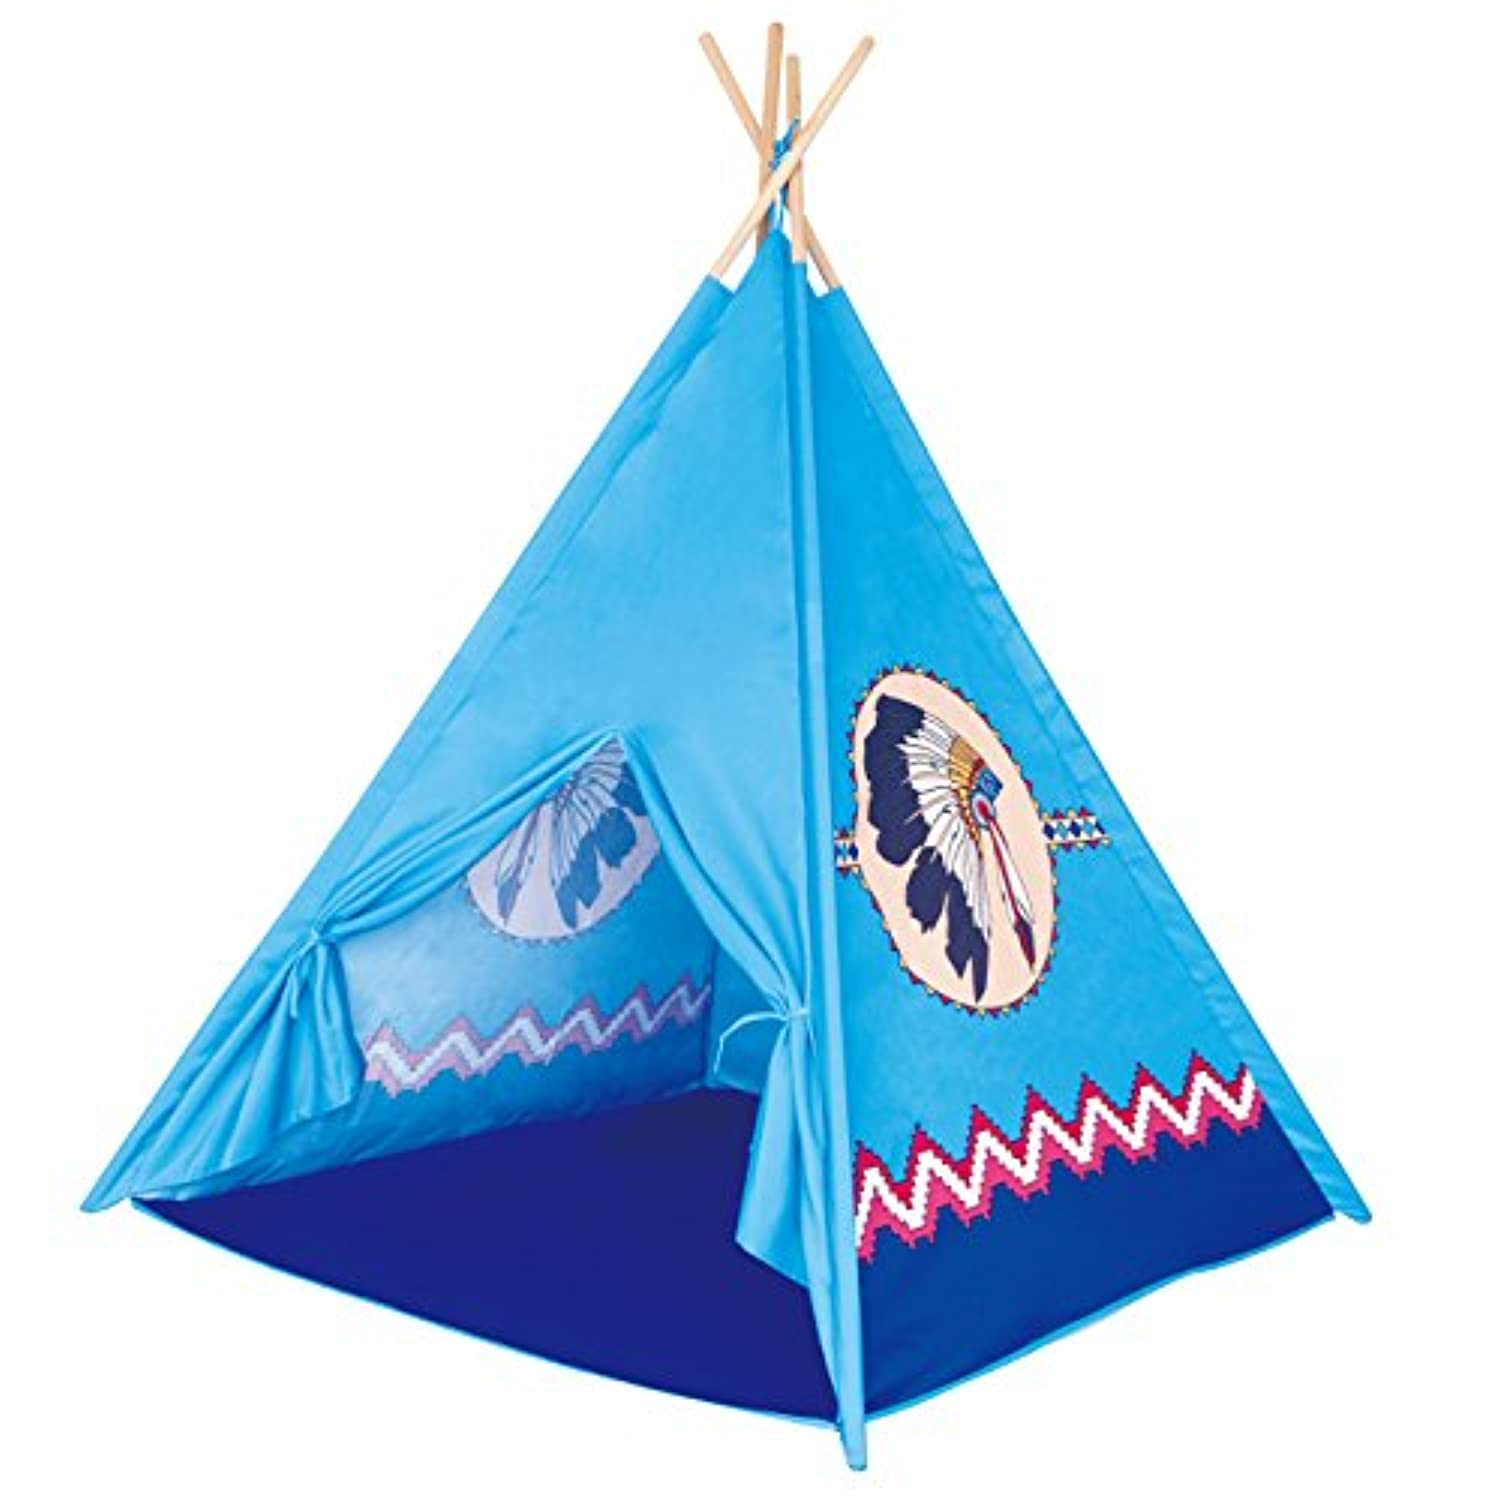 Poco Divo ApacheターコイズTeepee Indian Tribeテントキッズインドアアウトドア再生子Playhouse Castle Toy Tipi with Wooden極